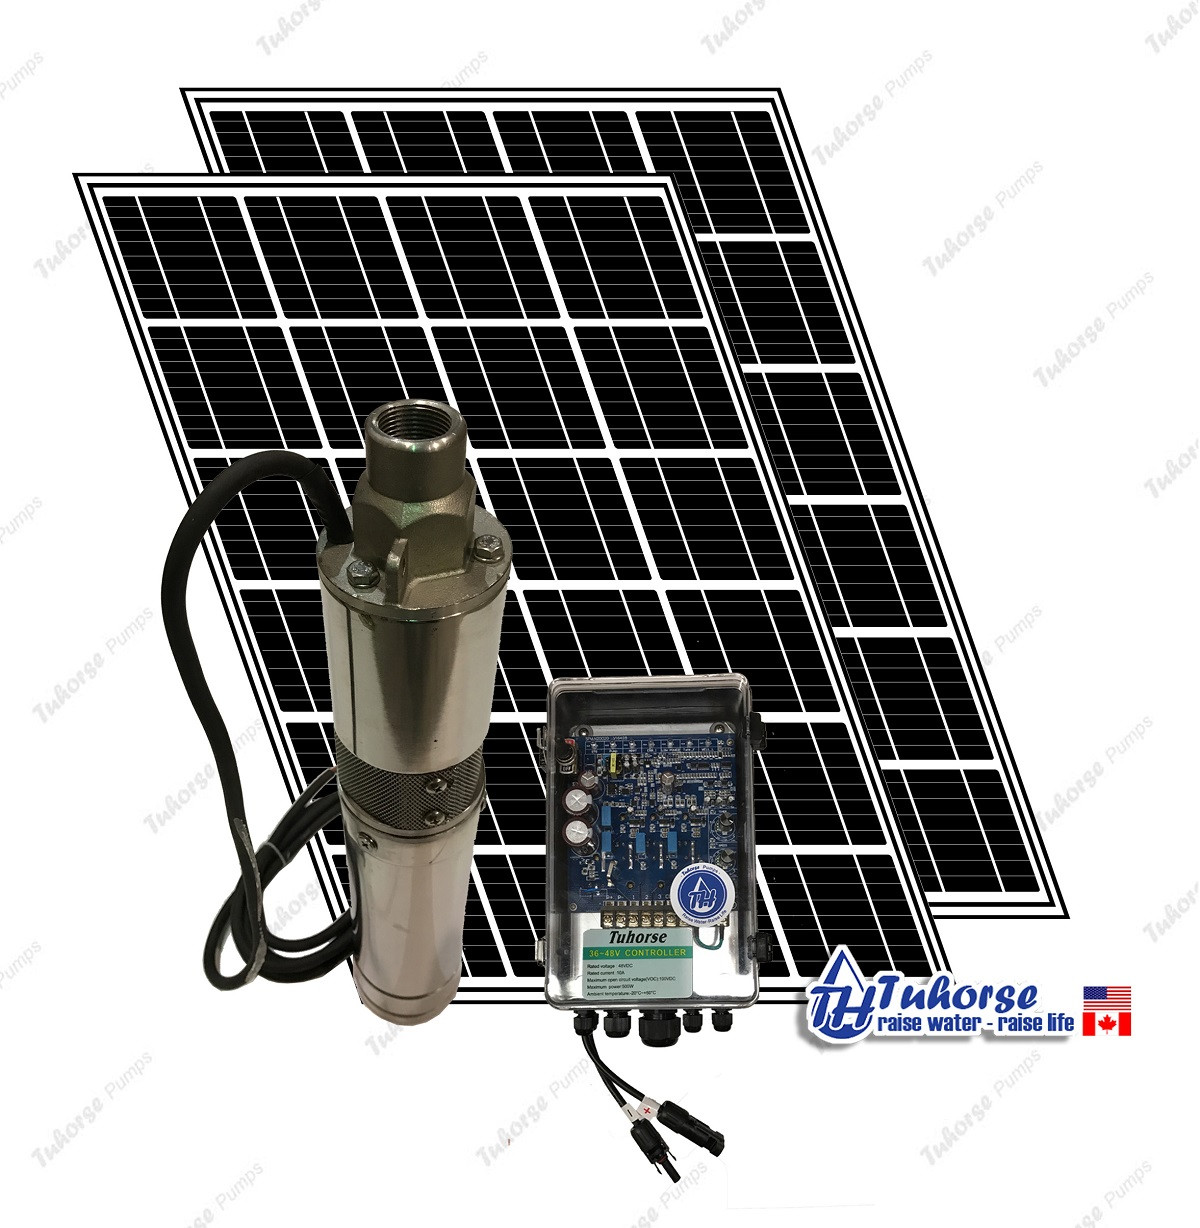 3 500w solar submersible deep well pump 560w solar panel 120 feet cable complete kit [ 1200 x 1228 Pixel ]